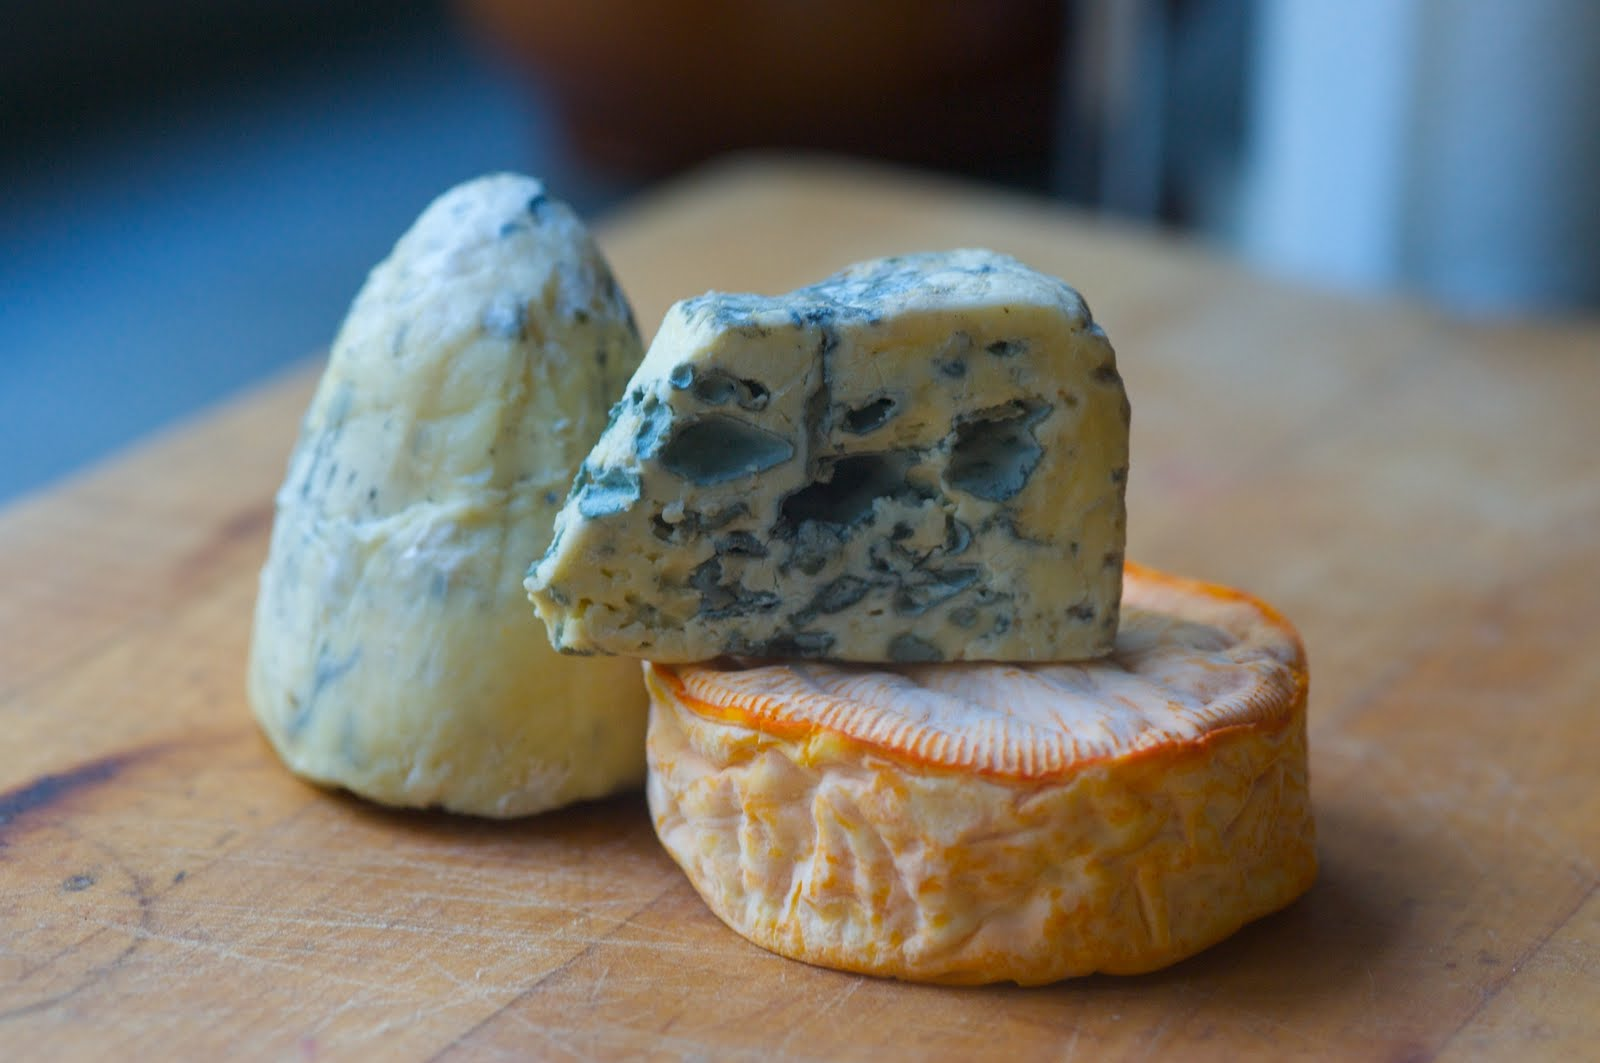 Scientists create new cheeses cultured from feet and armpit bacteria